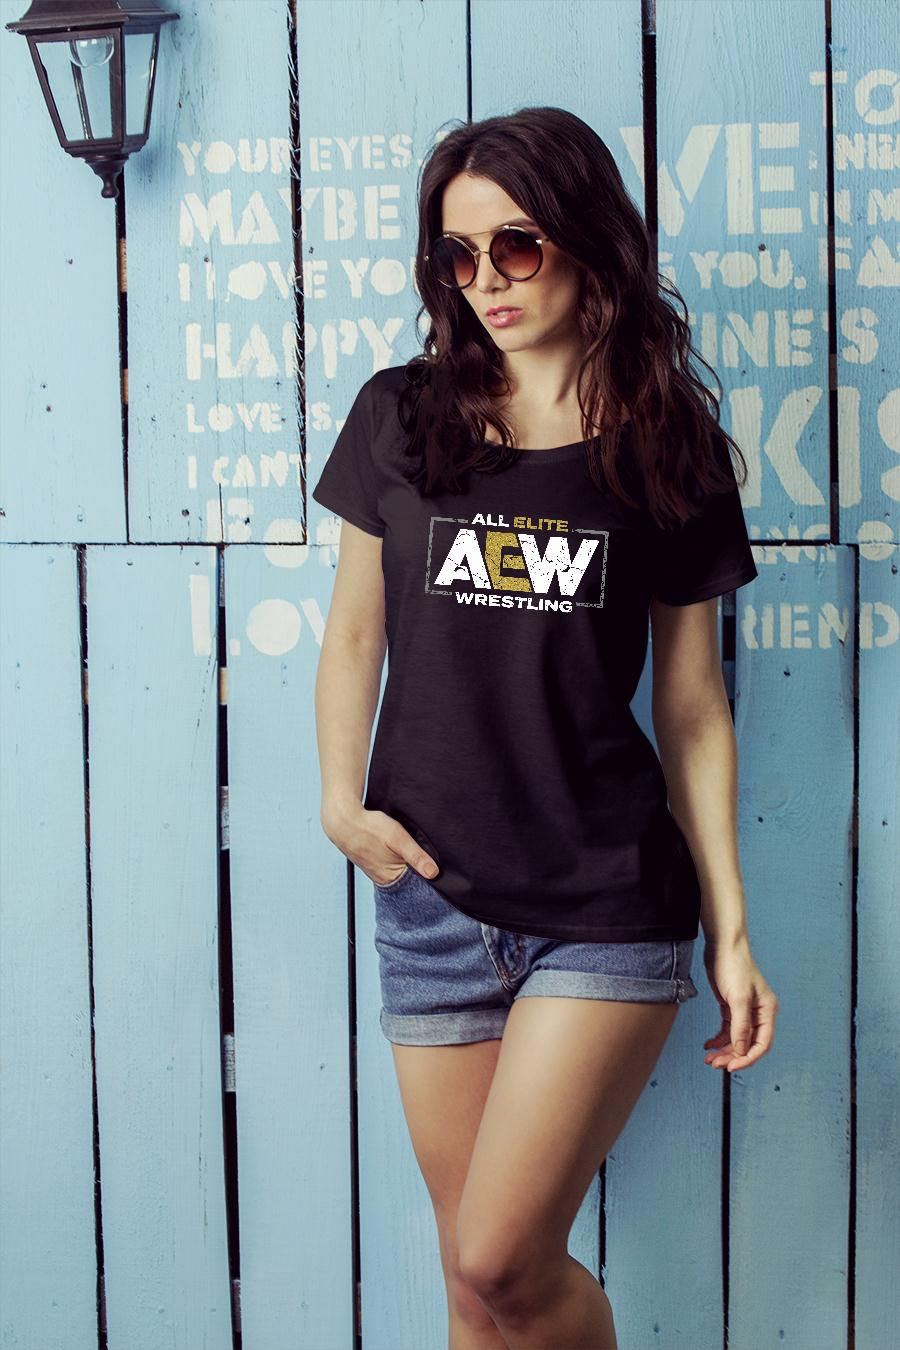 All elite AEW wrestling shirt ladies tee official